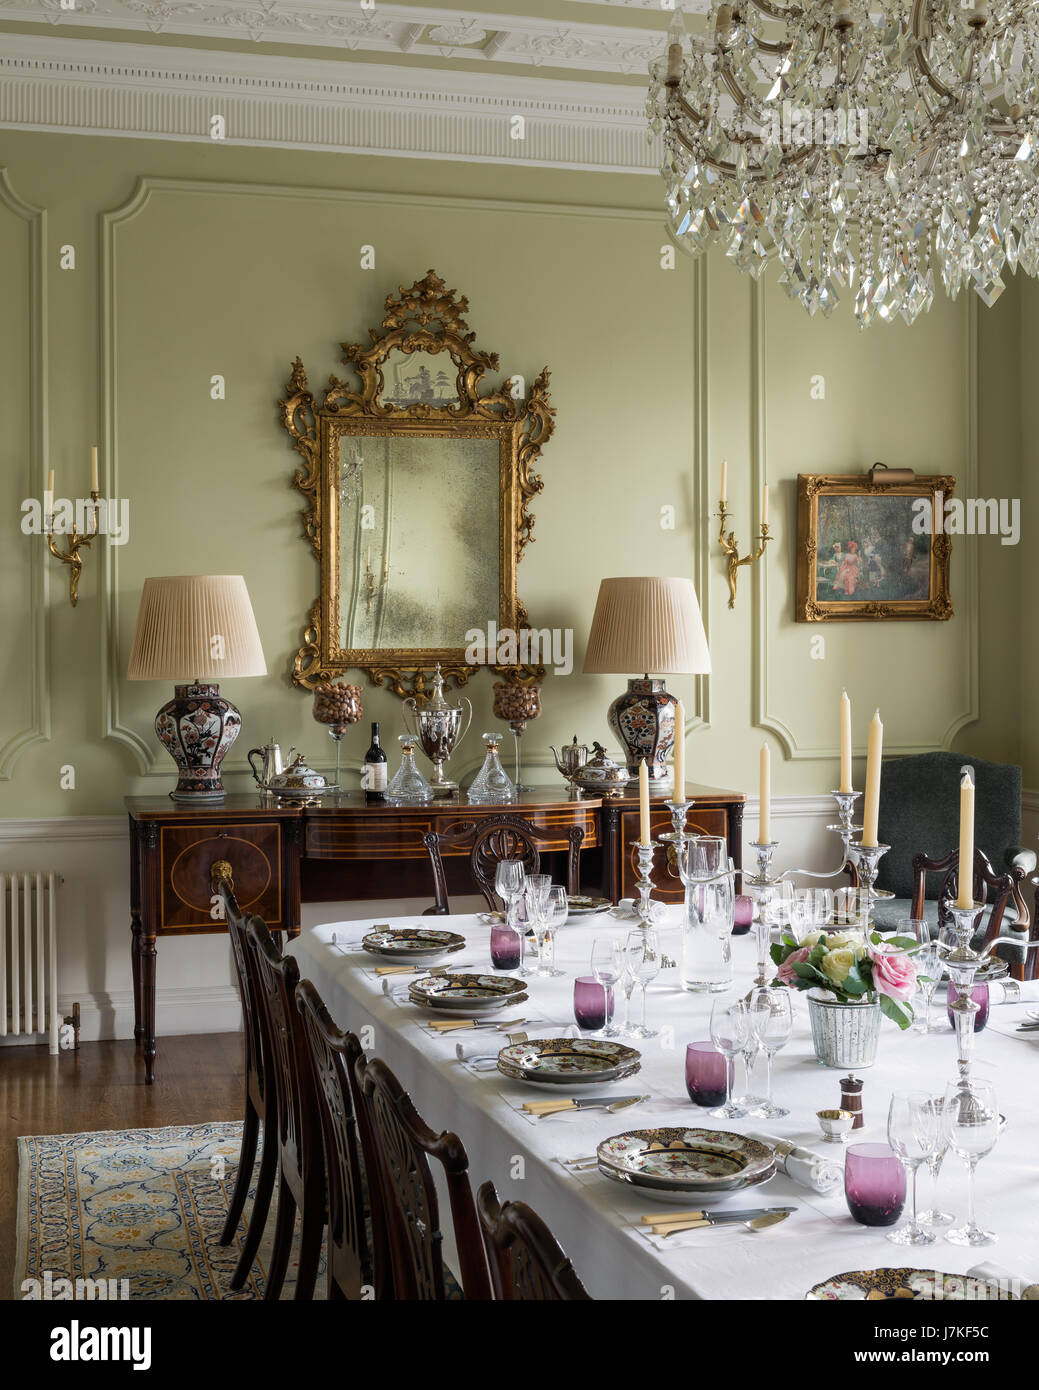 Georgian Style Dining Chairs In Grand Room With Glass Chandelier And Antique Sideboard